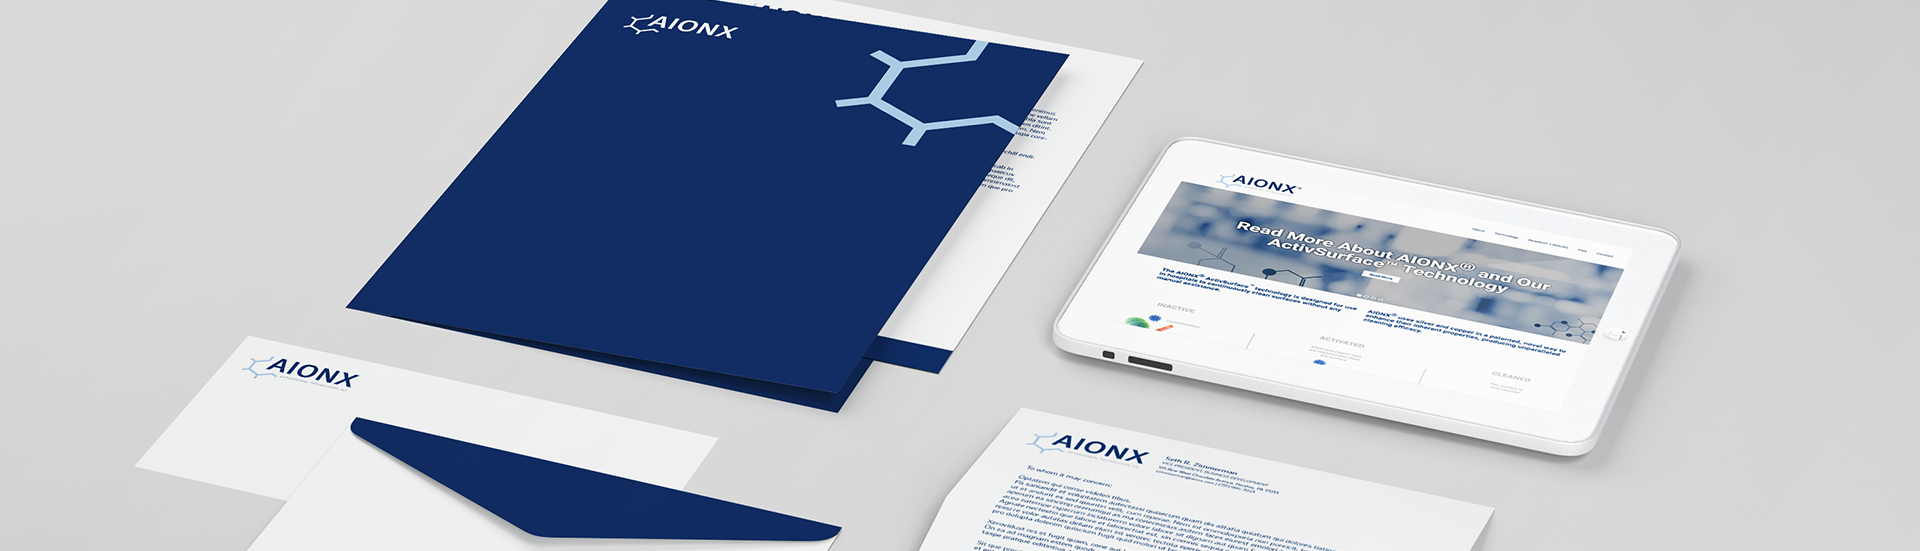 Aionx Branding, Strategy & Illustration